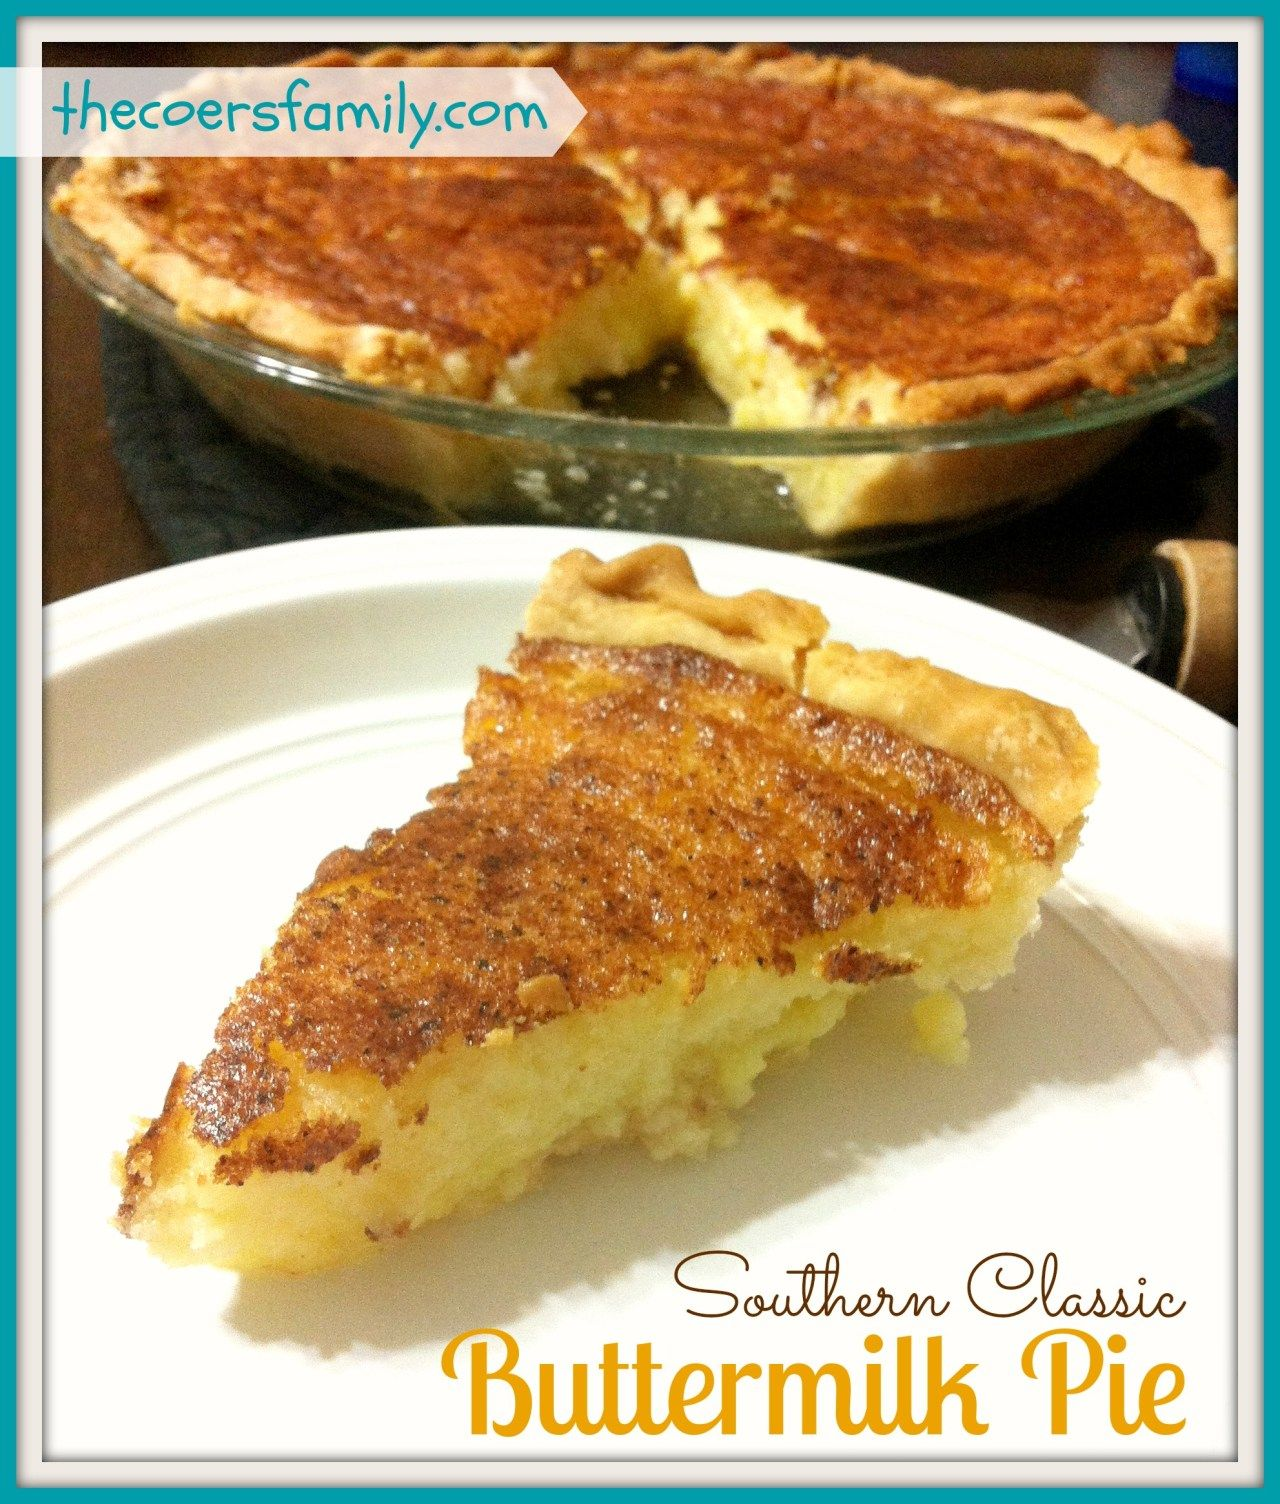 Buttermilk Pie Just Like My Nanny Used To Make The Coers Family Recipe Buttermilk Pie Recipe Buttermilk Pie Desserts